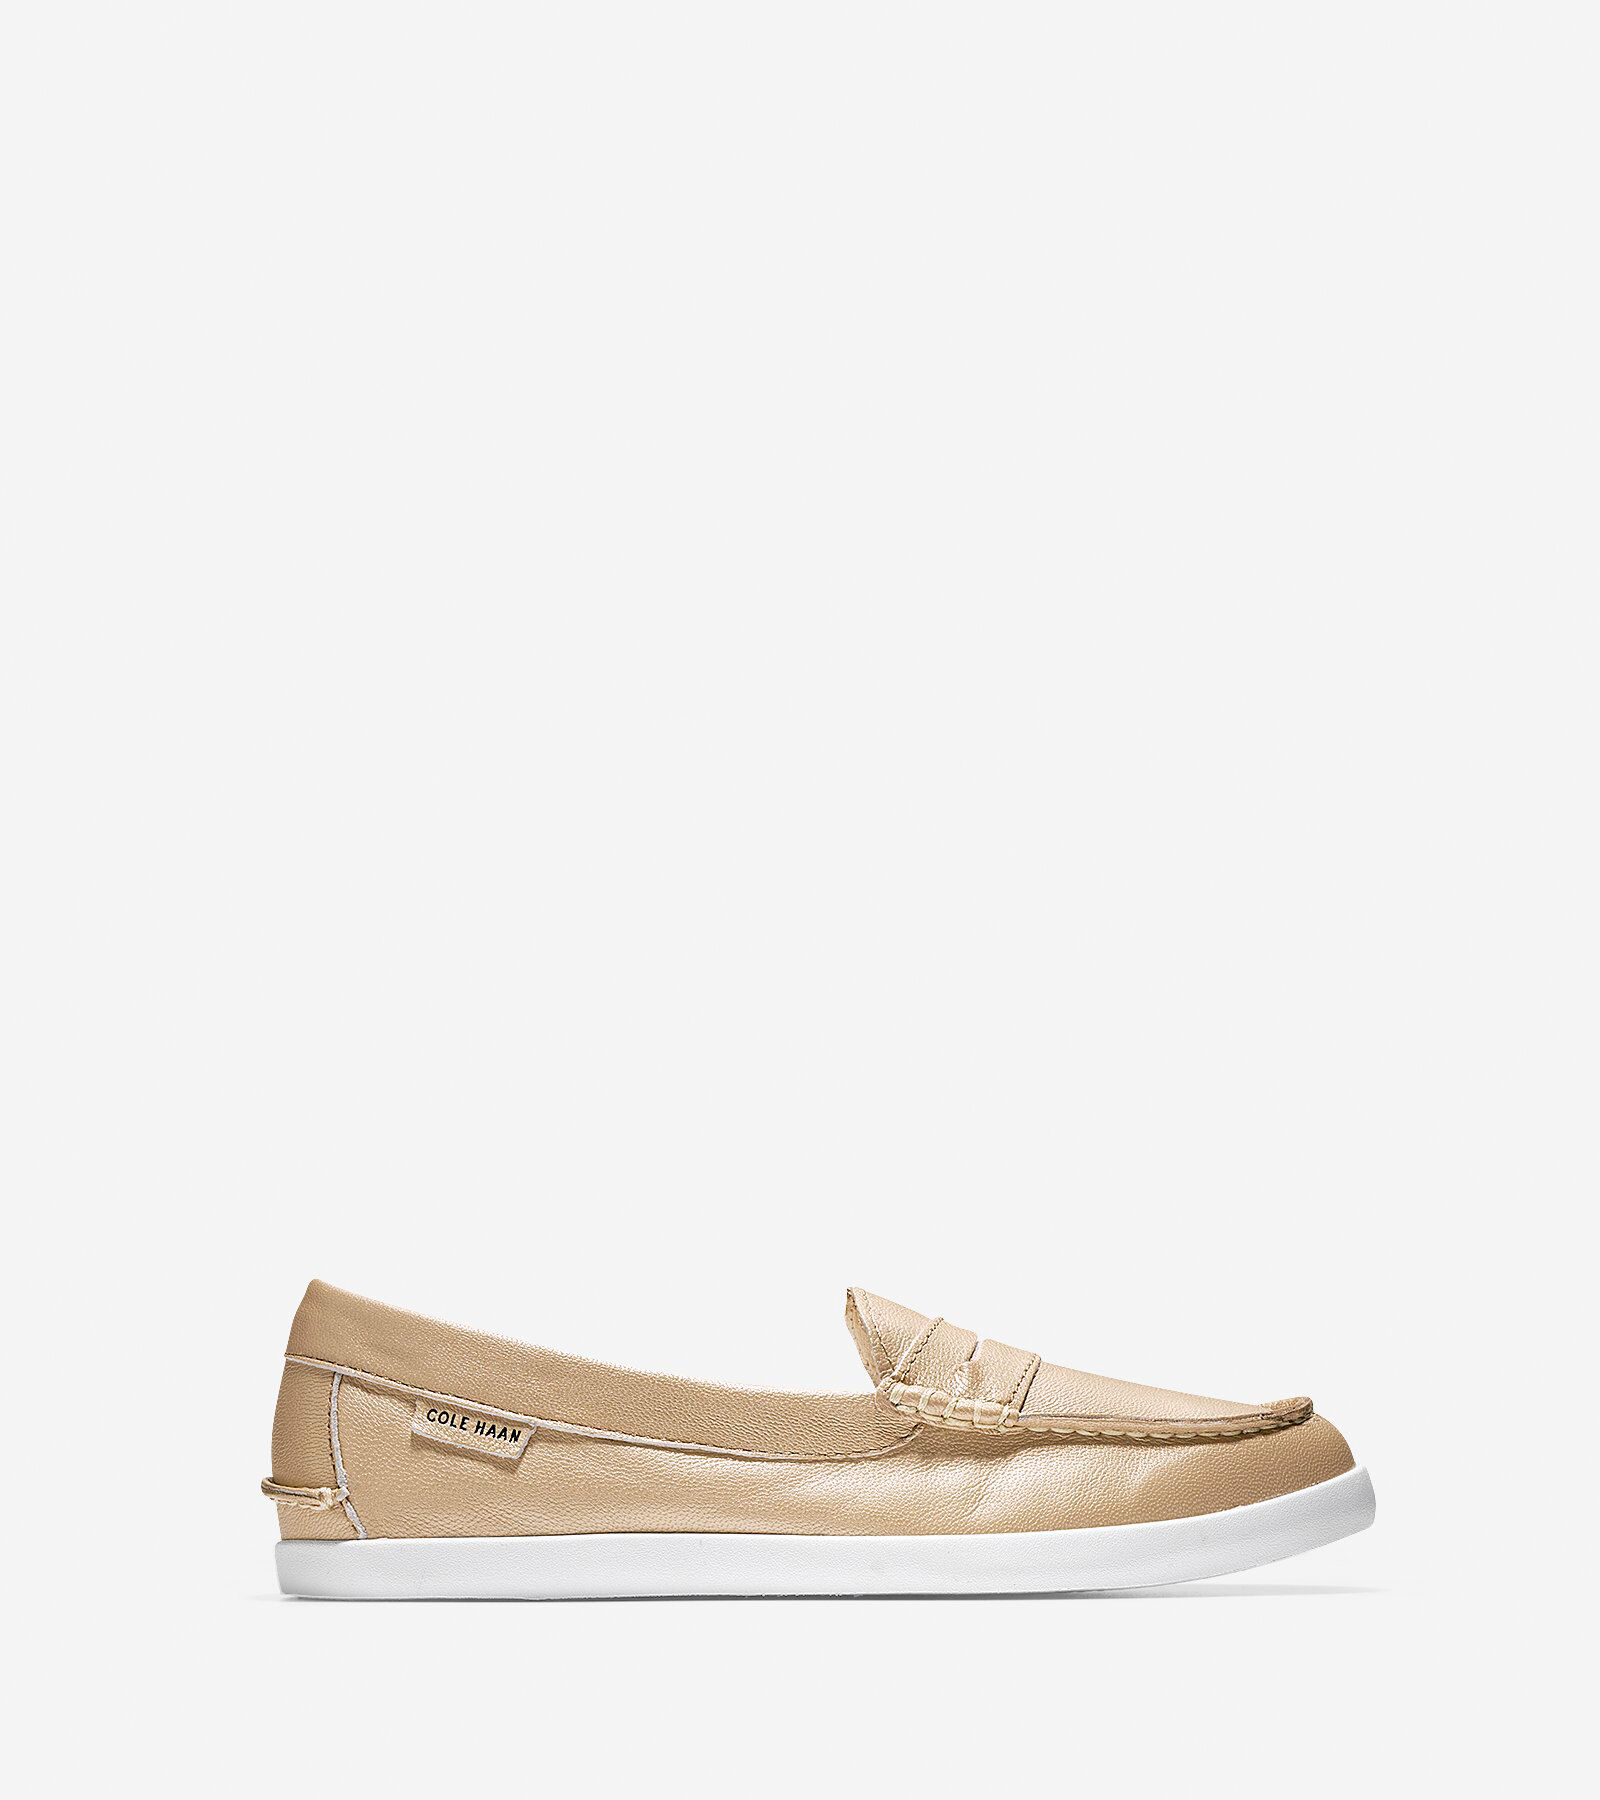 Womens Shoes Cole Haan Nantucket Loafer Soft Gold Metallic